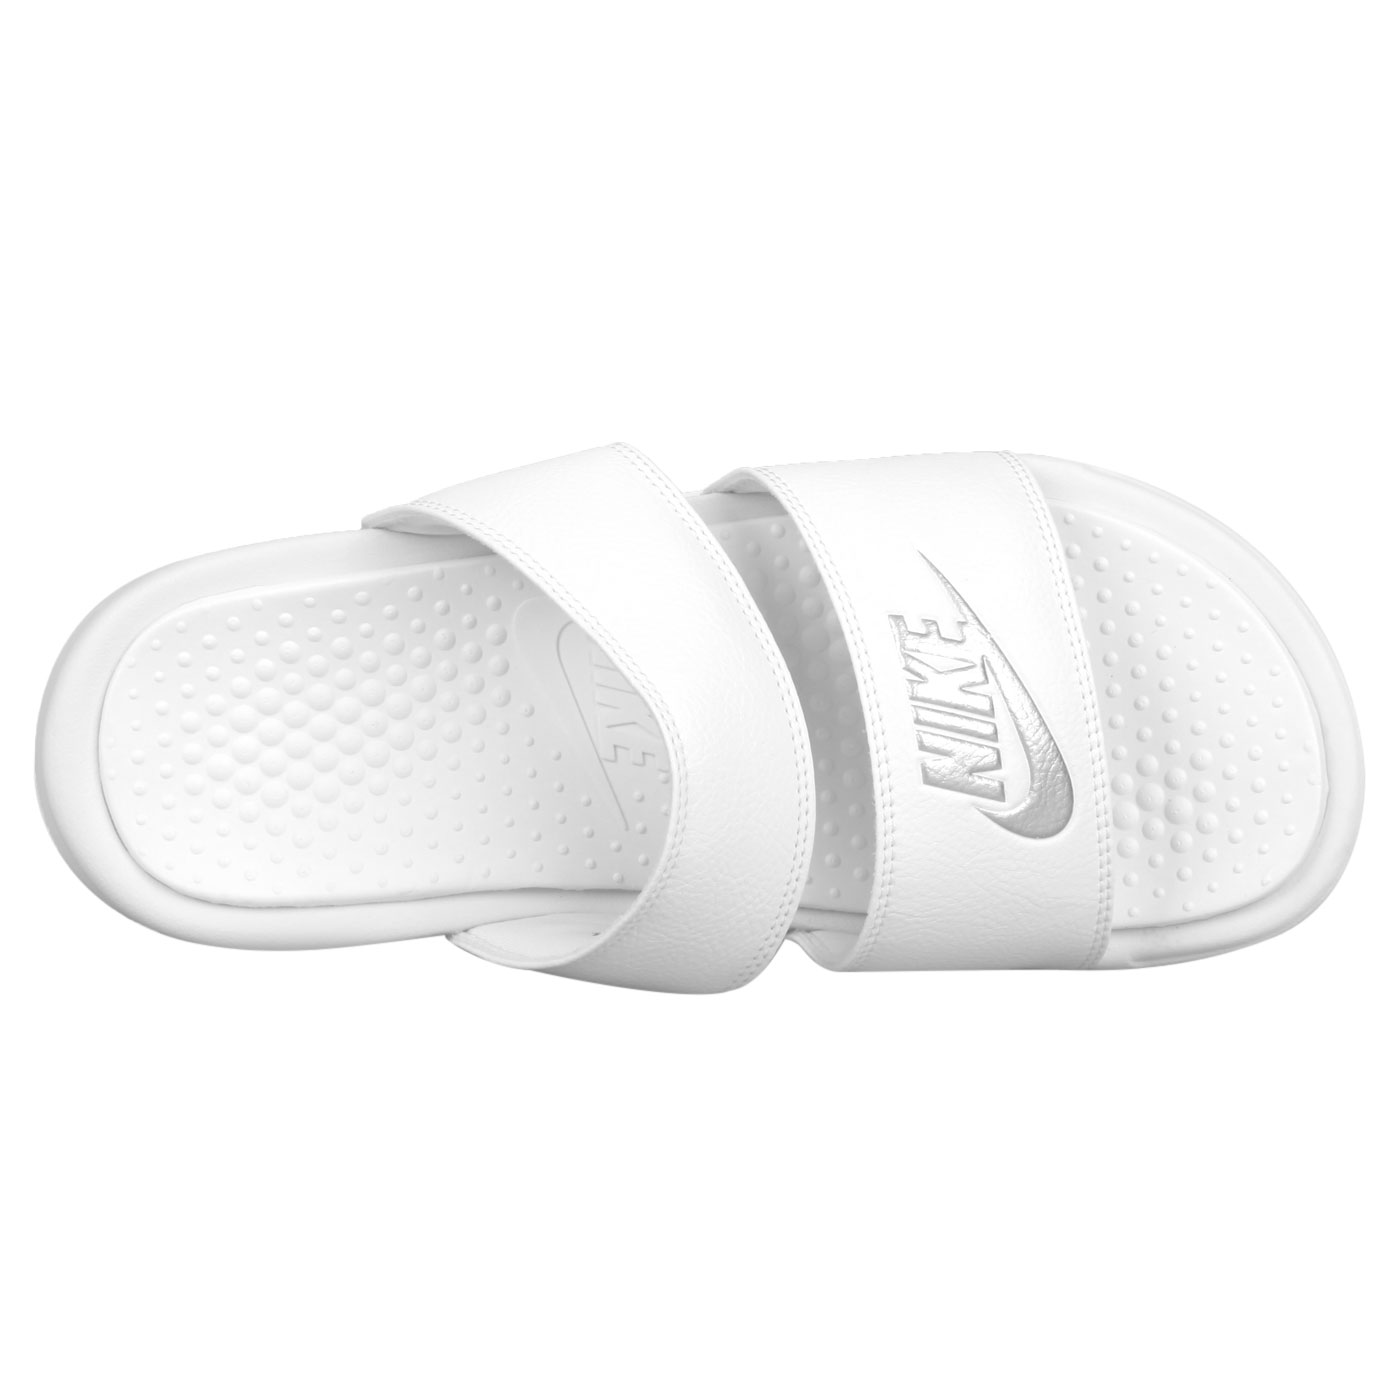 NIKE 女涼拖鞋  @WMNS BENASSI DUO ULTRA SLIDE@819717010 - 白銀